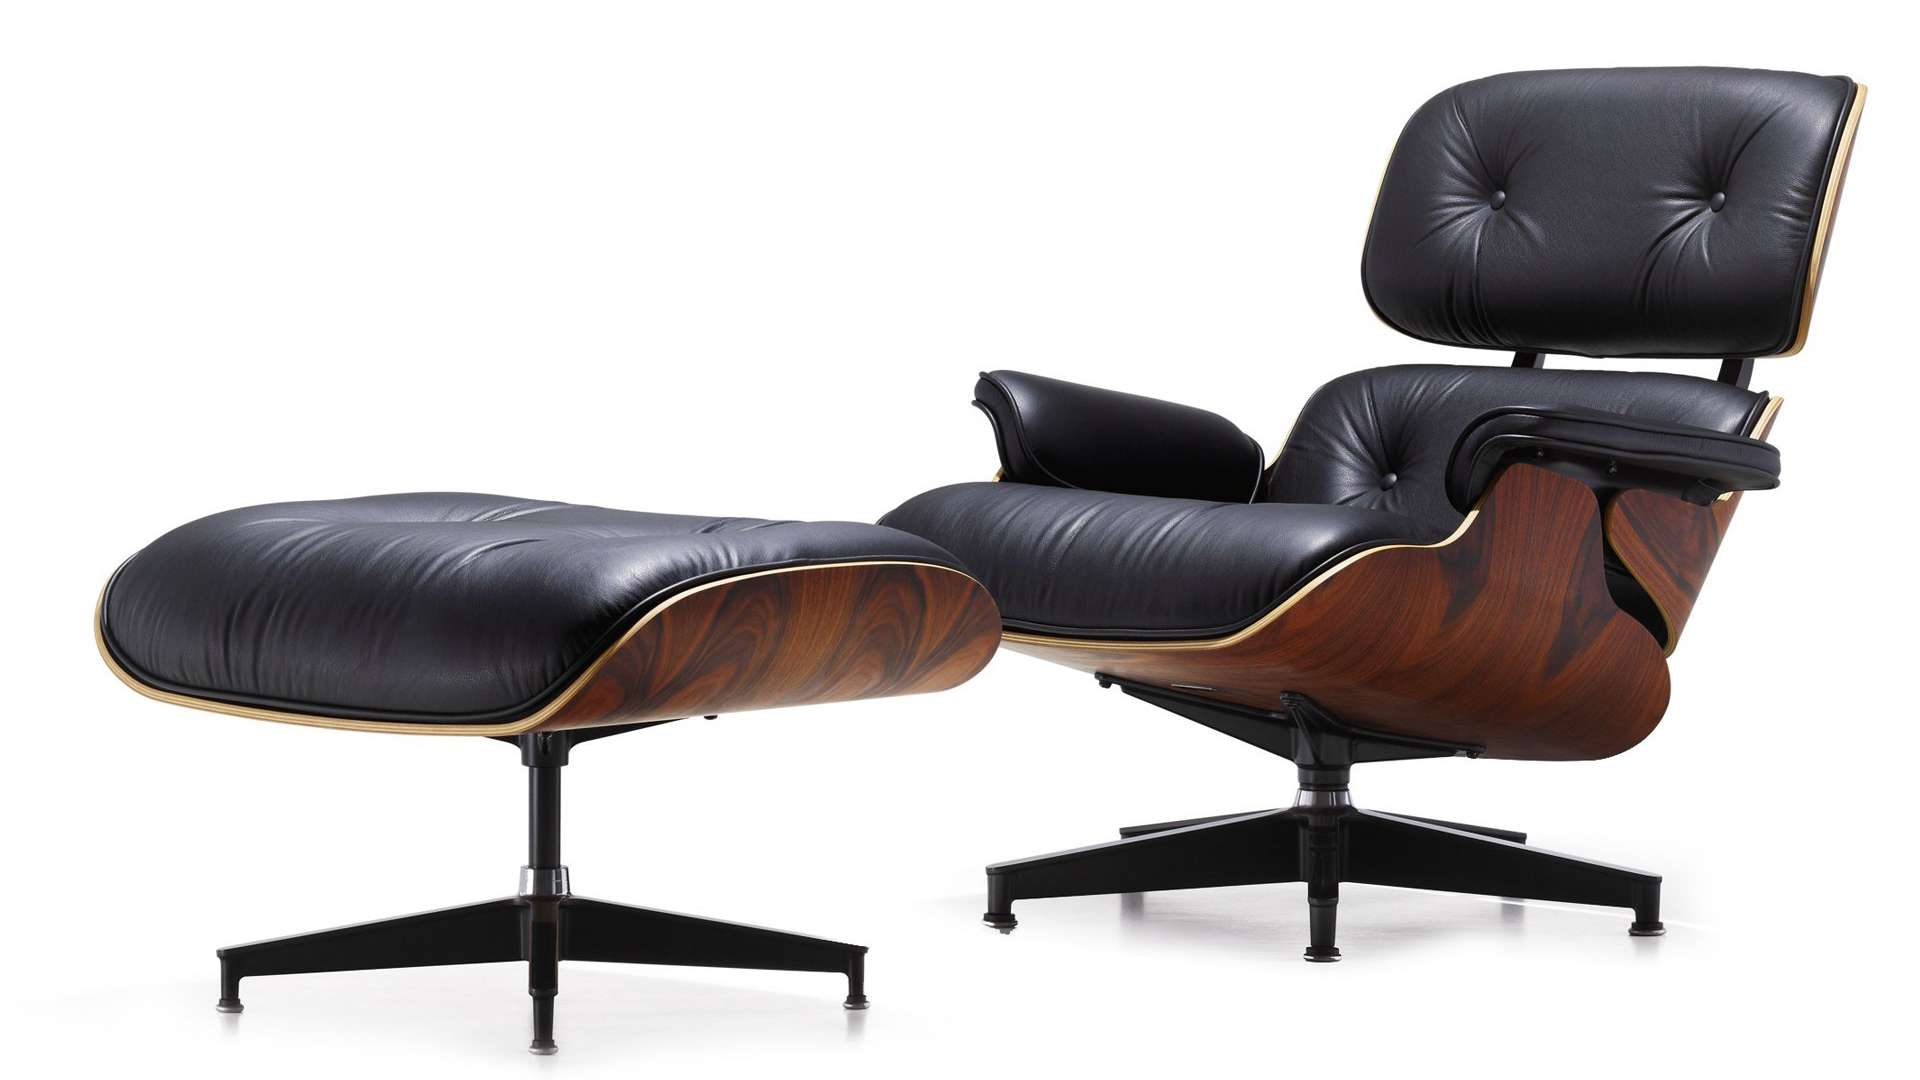 Lounge Chair von Ray & Charles Eames (1907-1978 & 1912-1988)